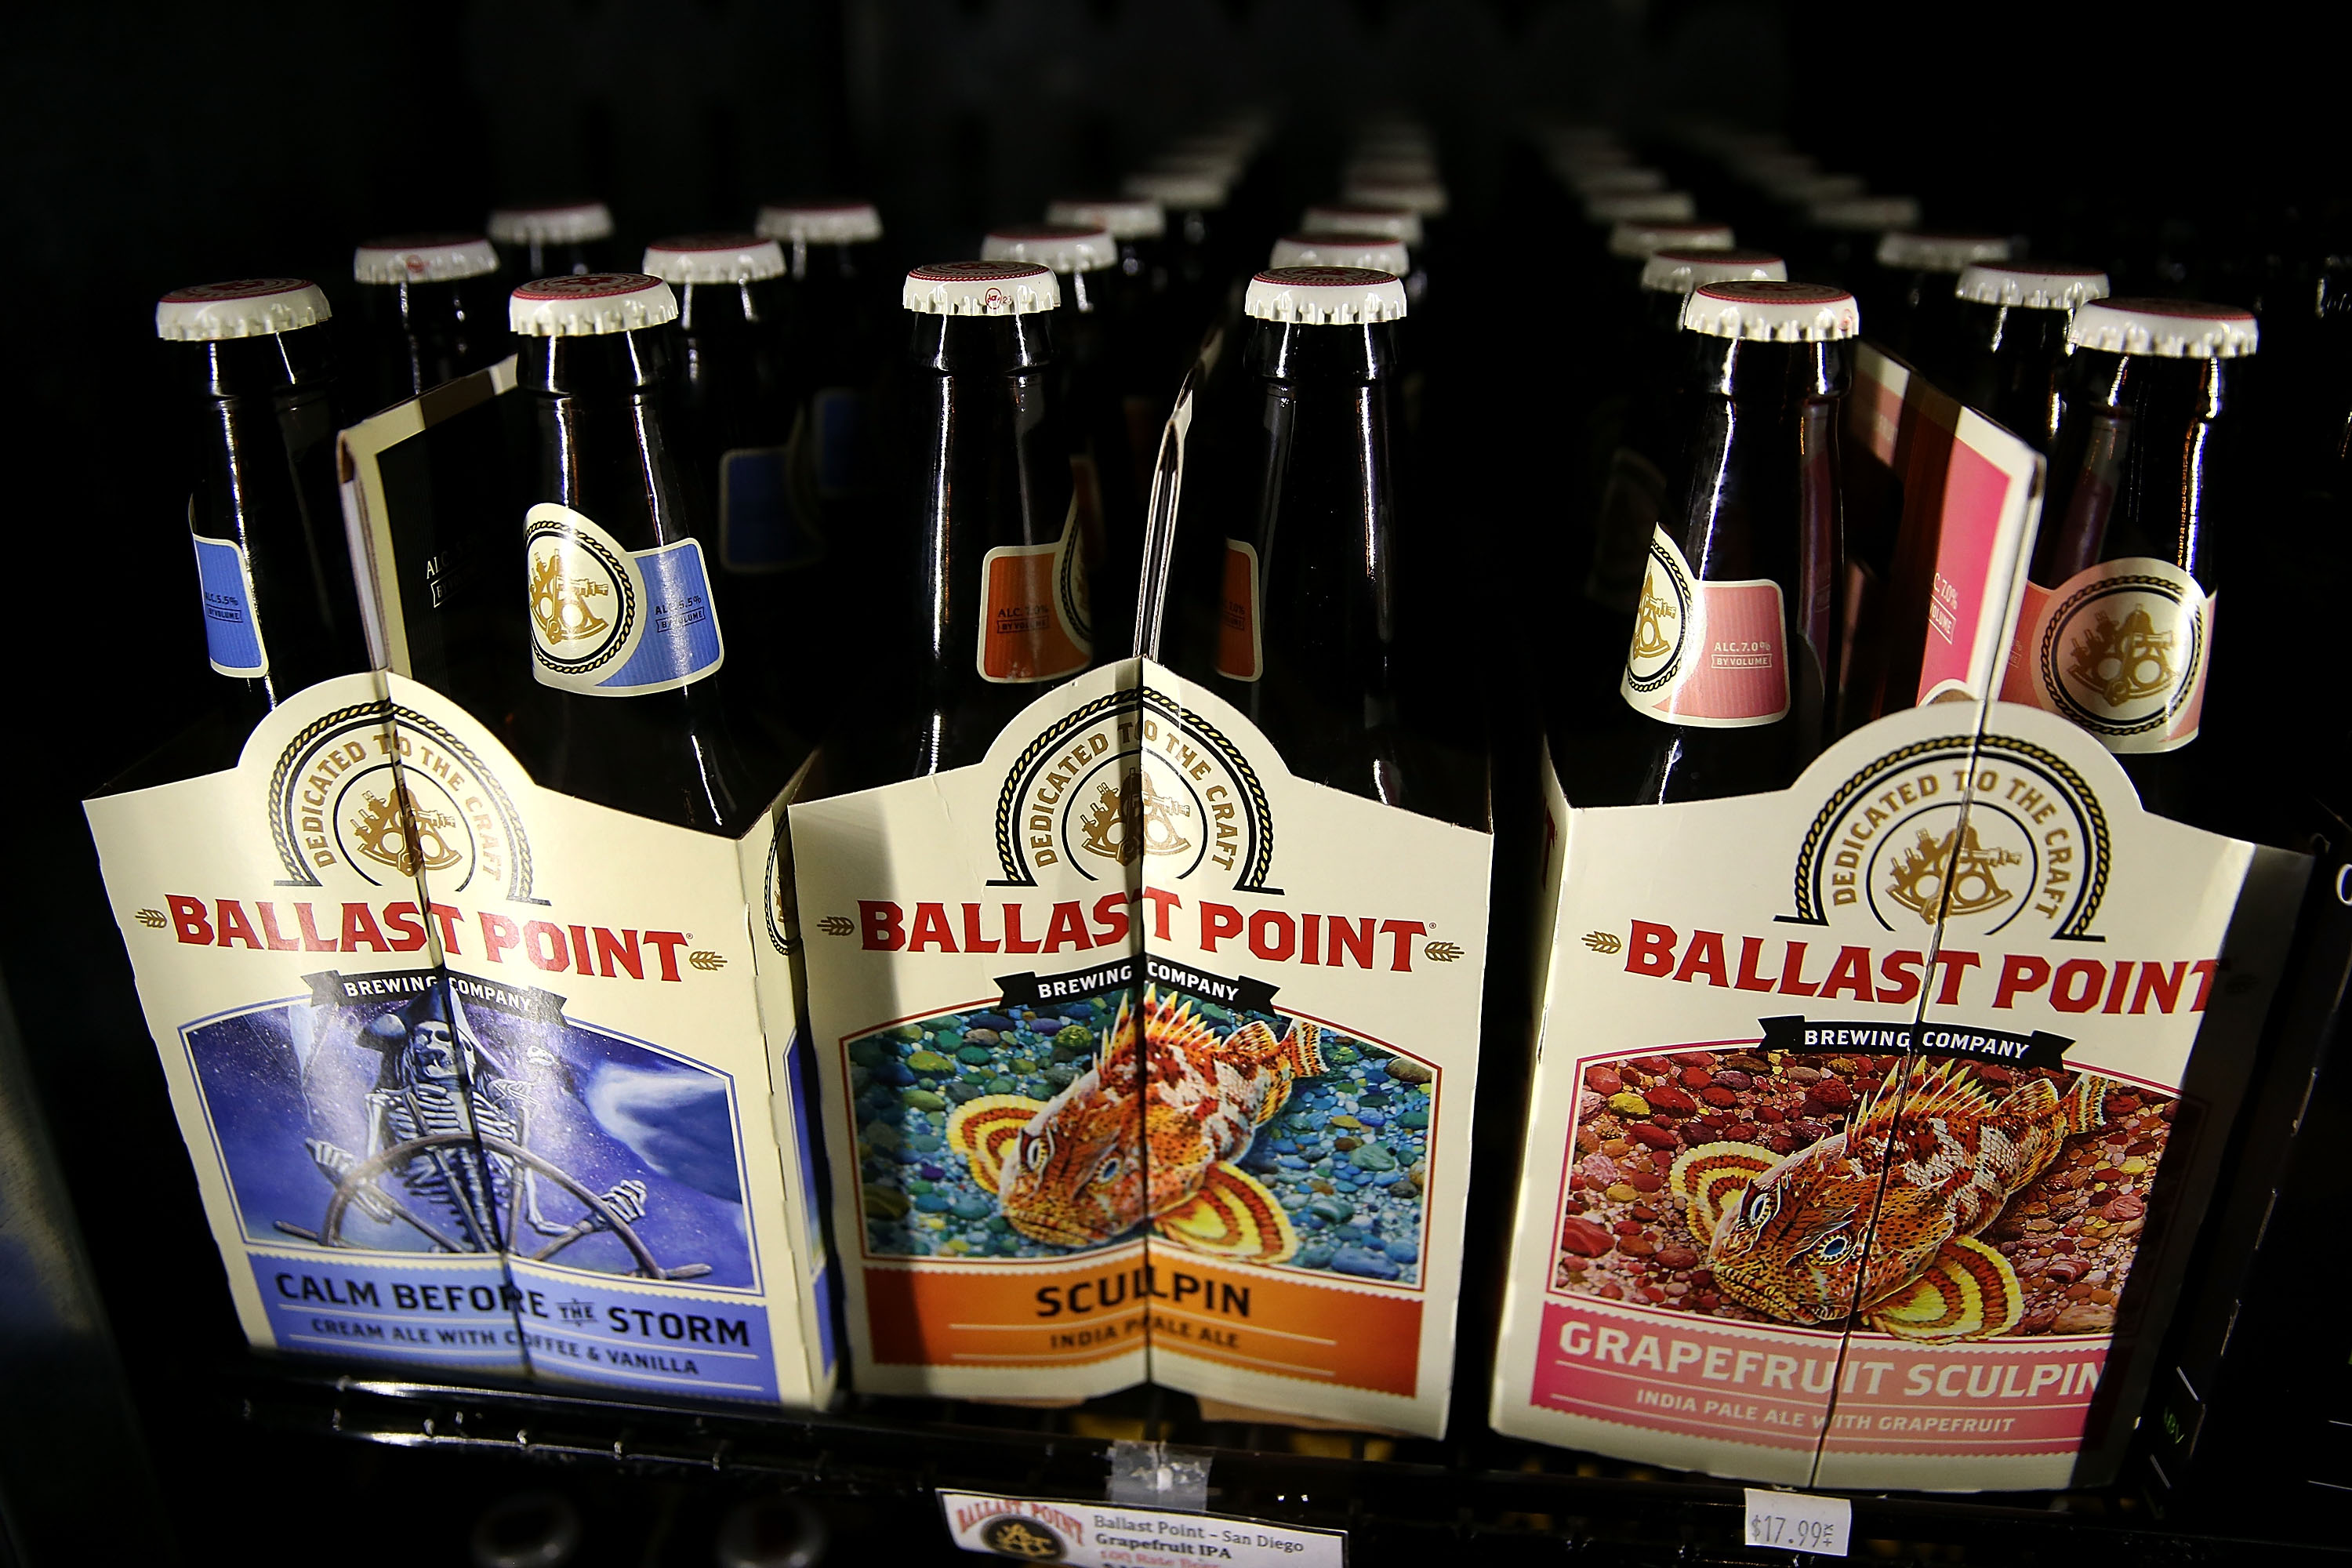 Ballast Point, Once Sold for $1 Billion, Offloaded to Tiny New Brewery in Wild Deal